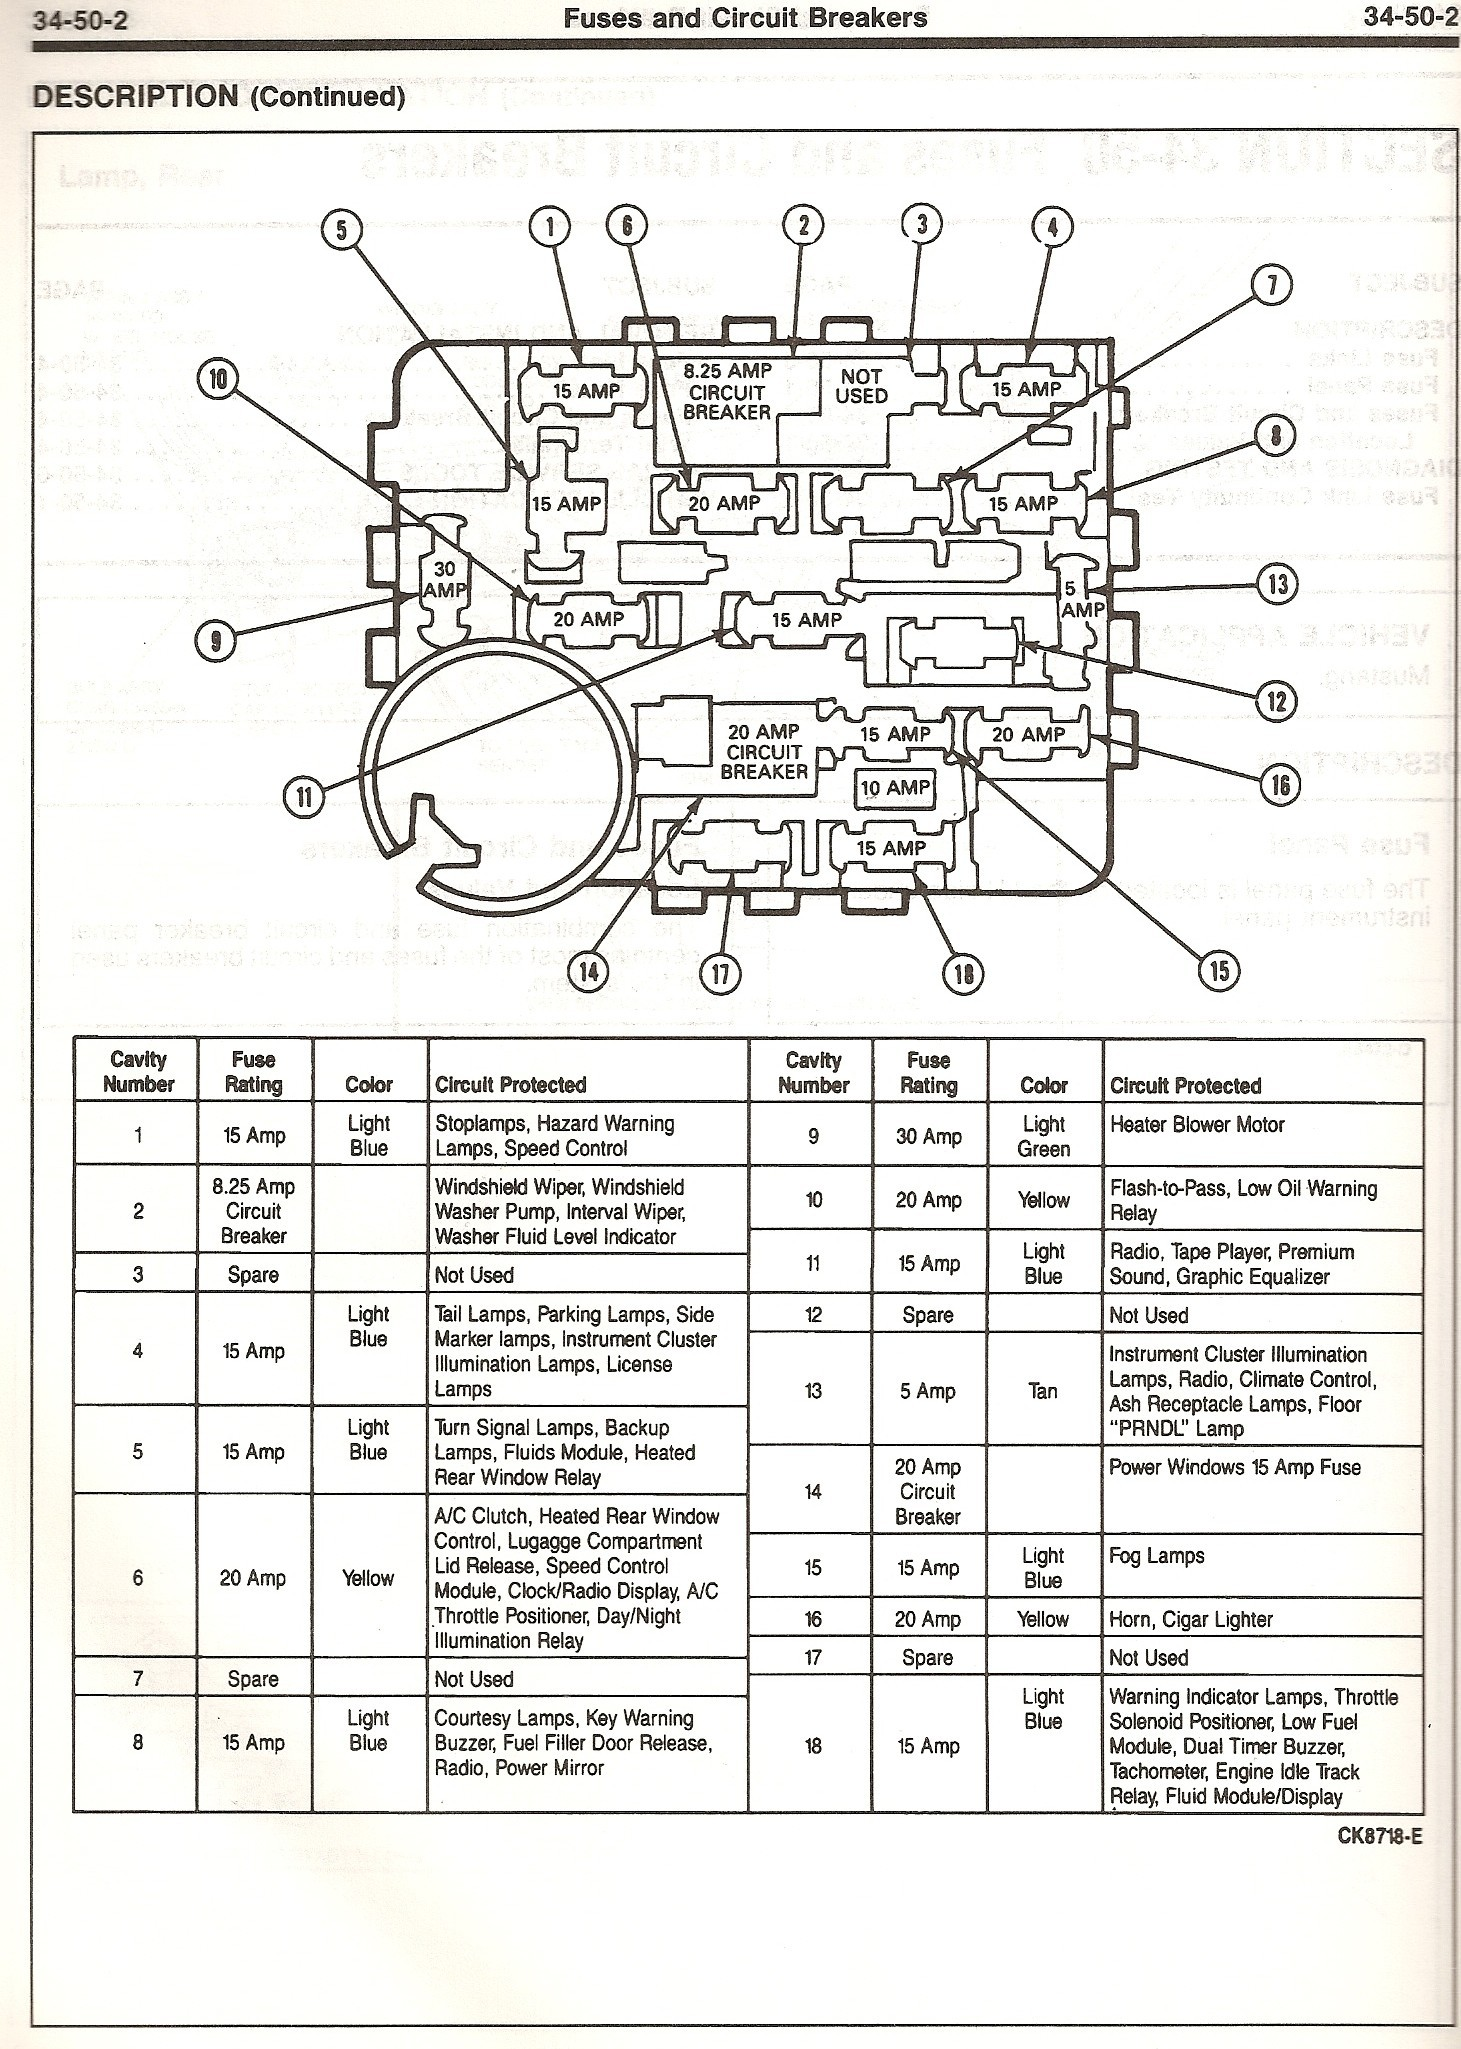 hight resolution of 1995 ford mustang fuse panel diagram wiring diagram datasource 1985 ford mustang fuse box diagram wiring